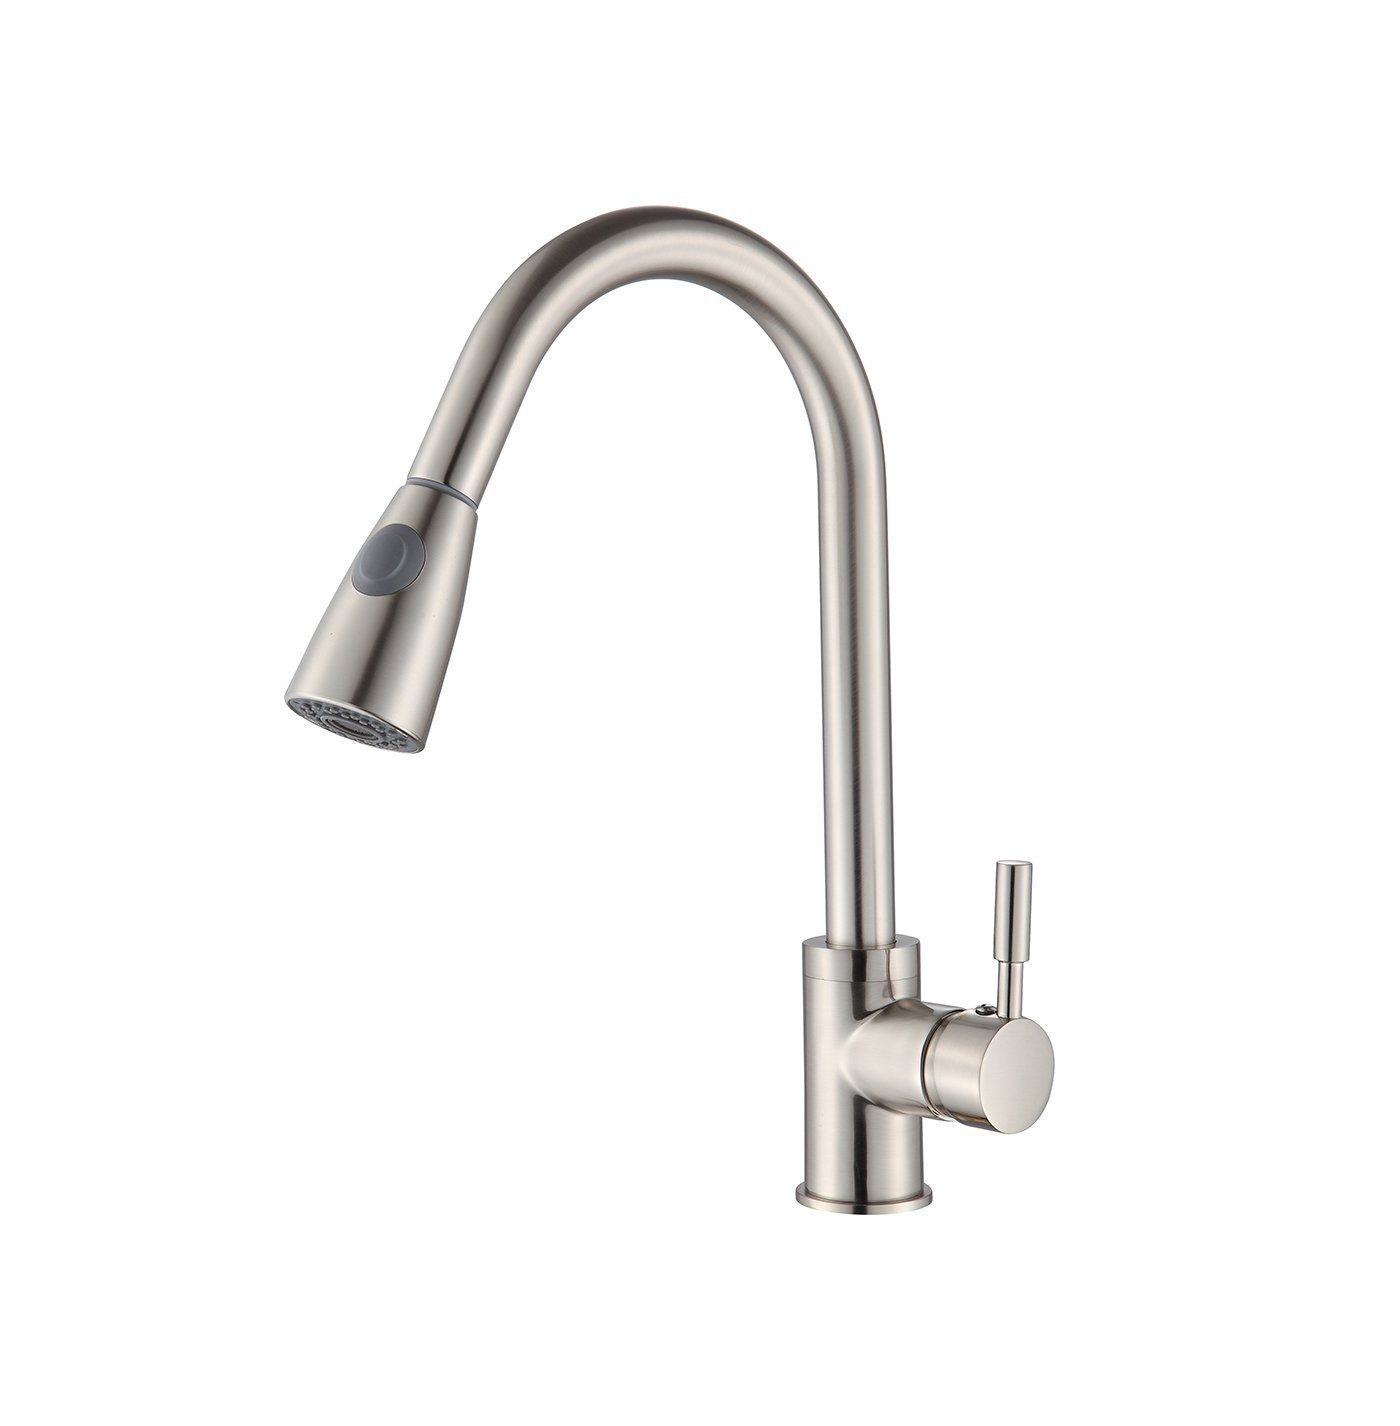 Kitchen Mixer Tap Buy Hive Kitchen Faucet Brushed Nickel Pull Out Sprayer Home Sink Mixer Tap Single Handle